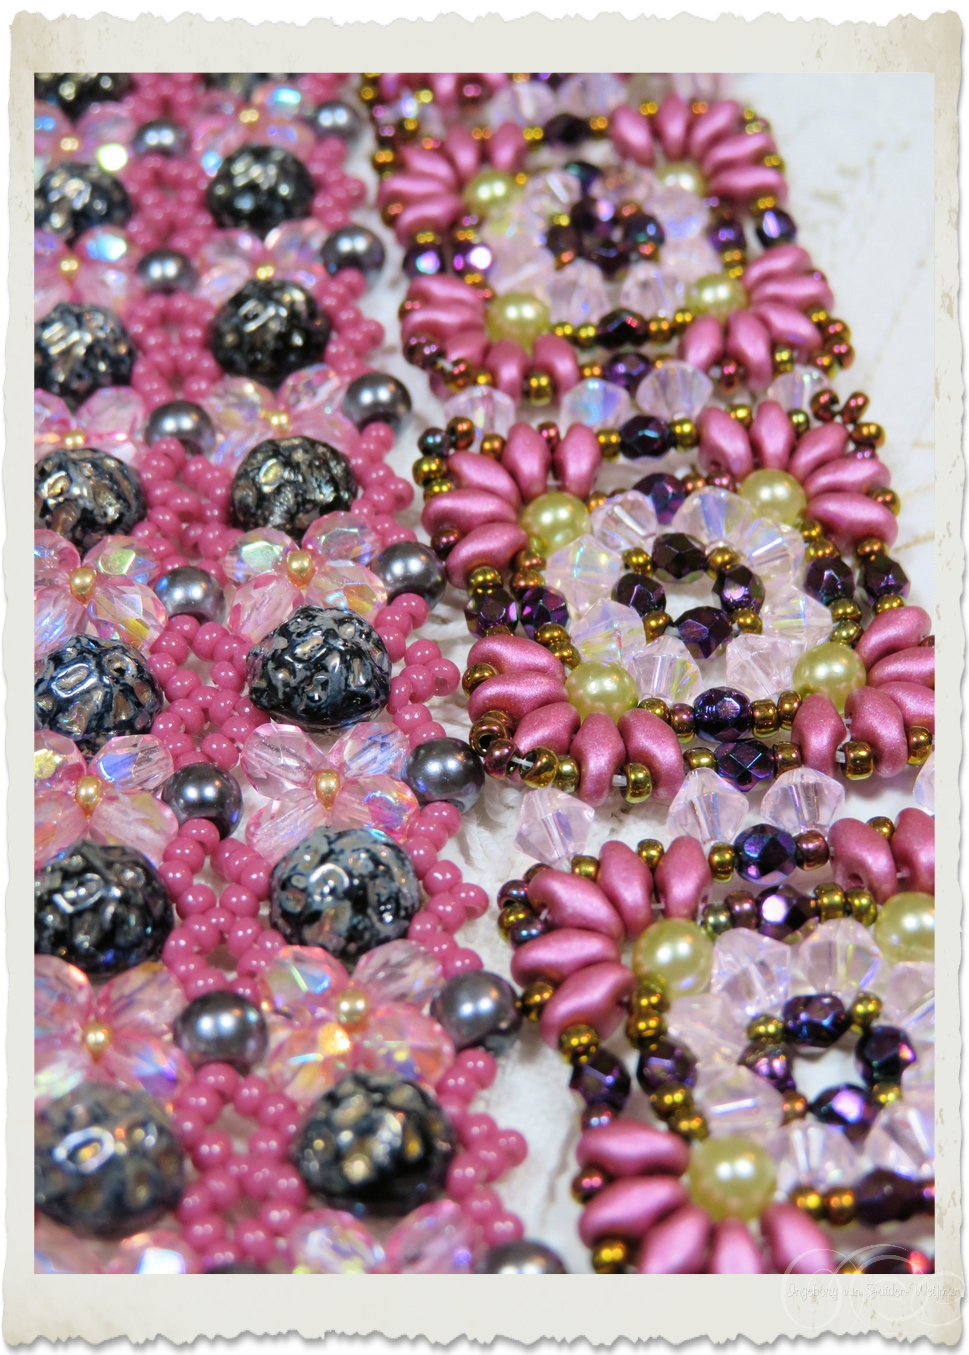 Details of pink bracelets with superduo beads